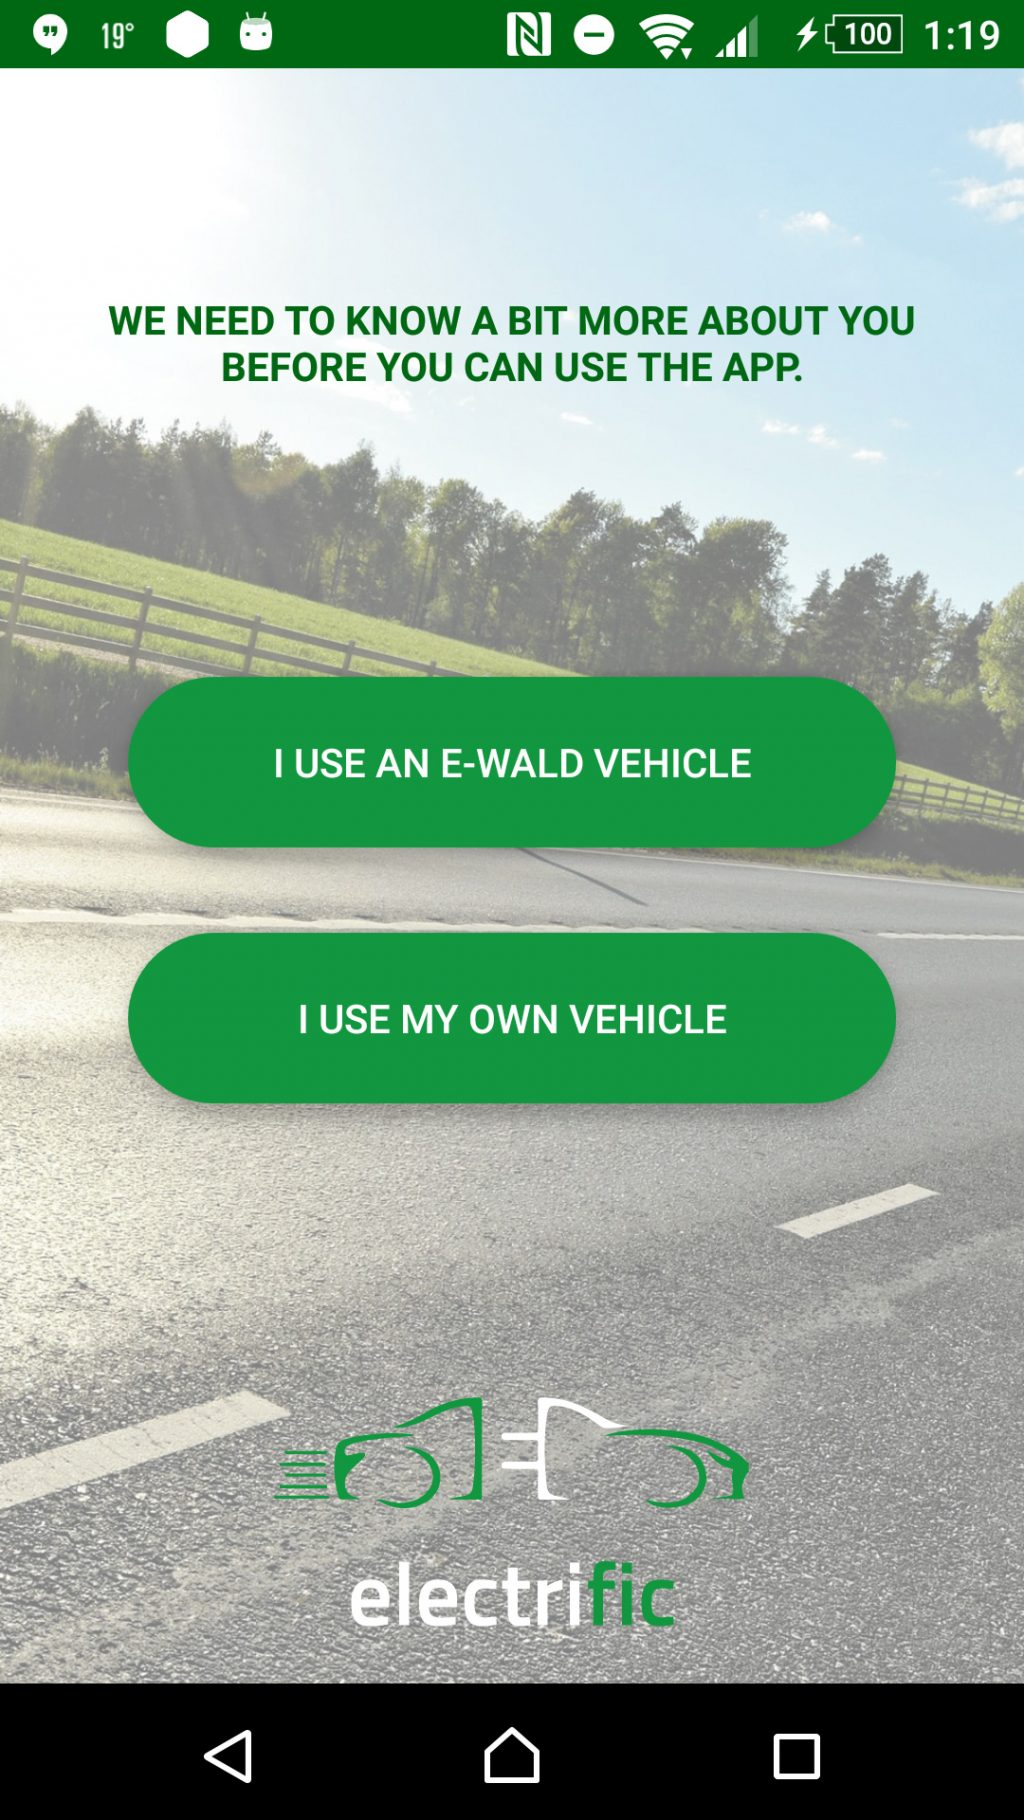 Renting or owning an Electric Vehicle